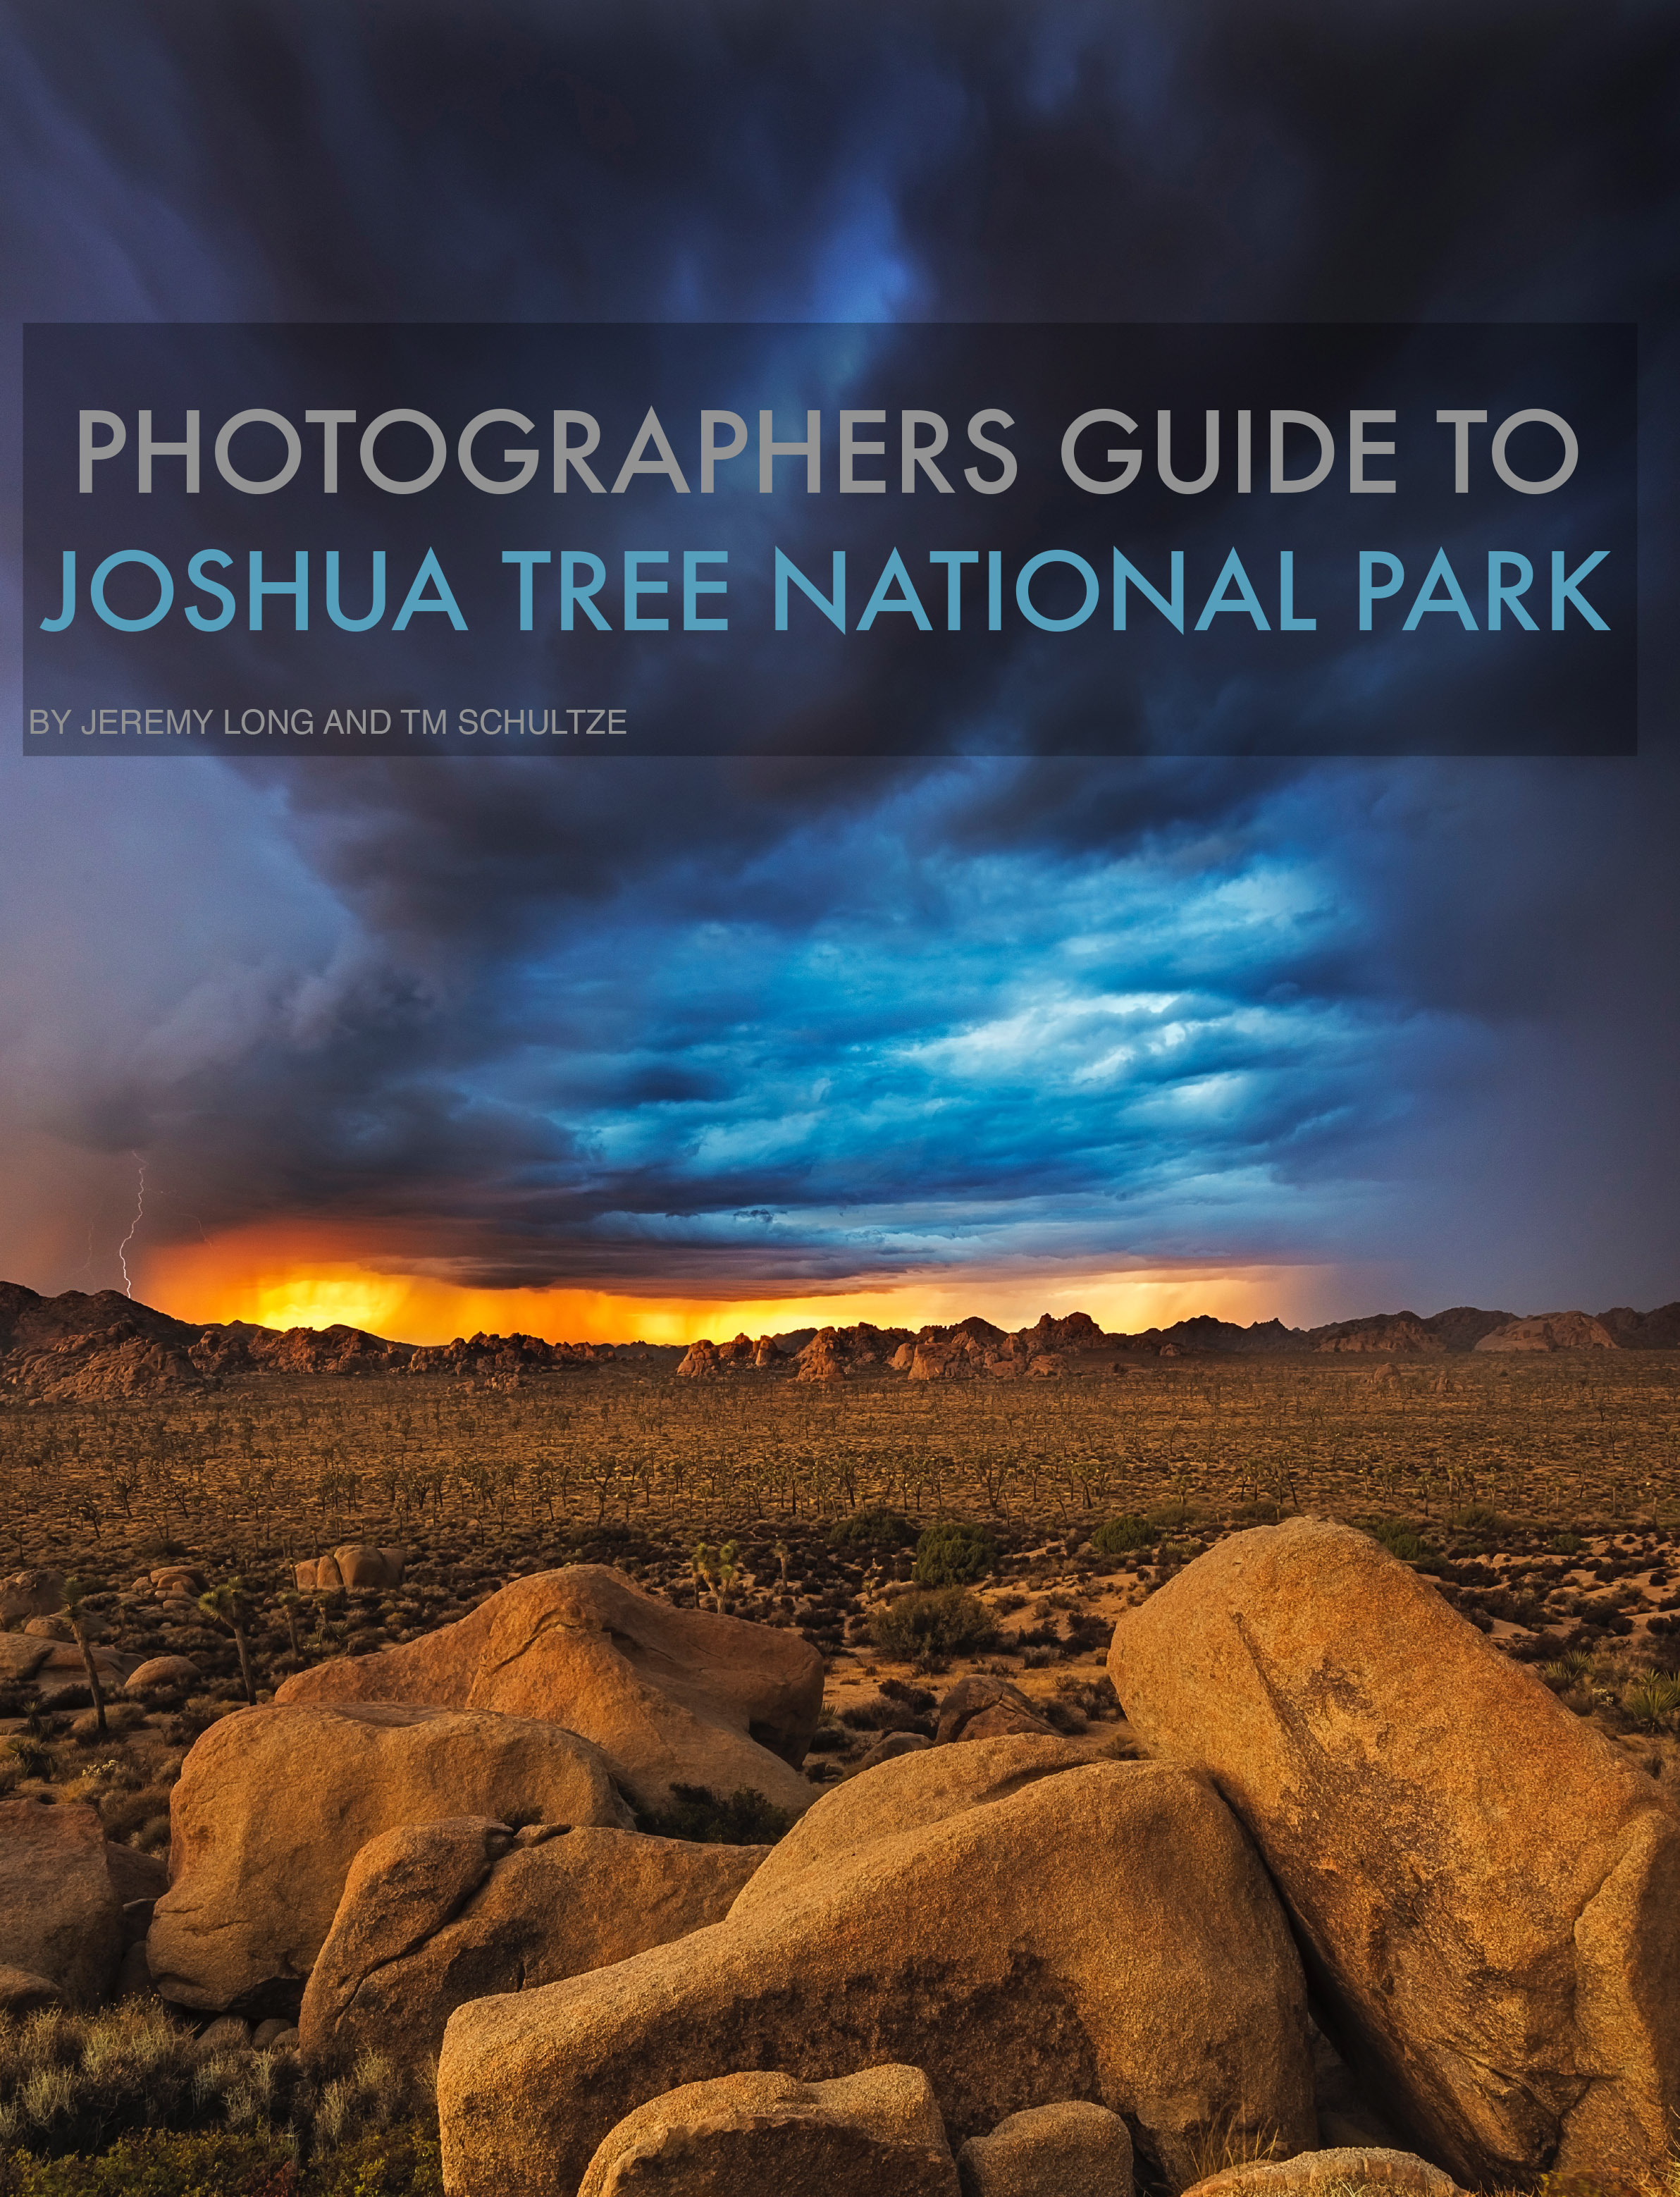 Photographers Guide To Joshua Tree National Park